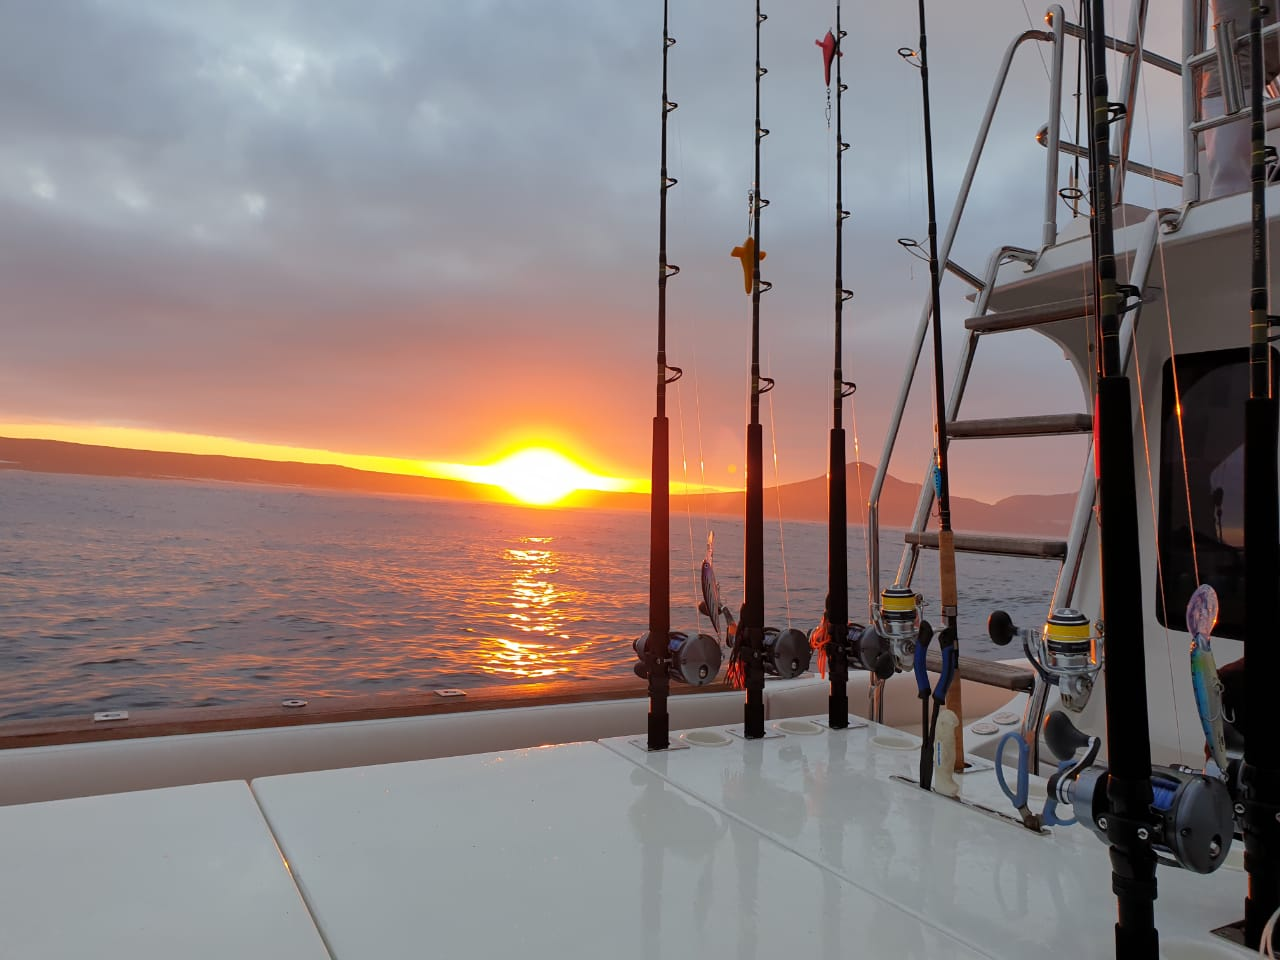 sunrise deep sea fishing cape town winter